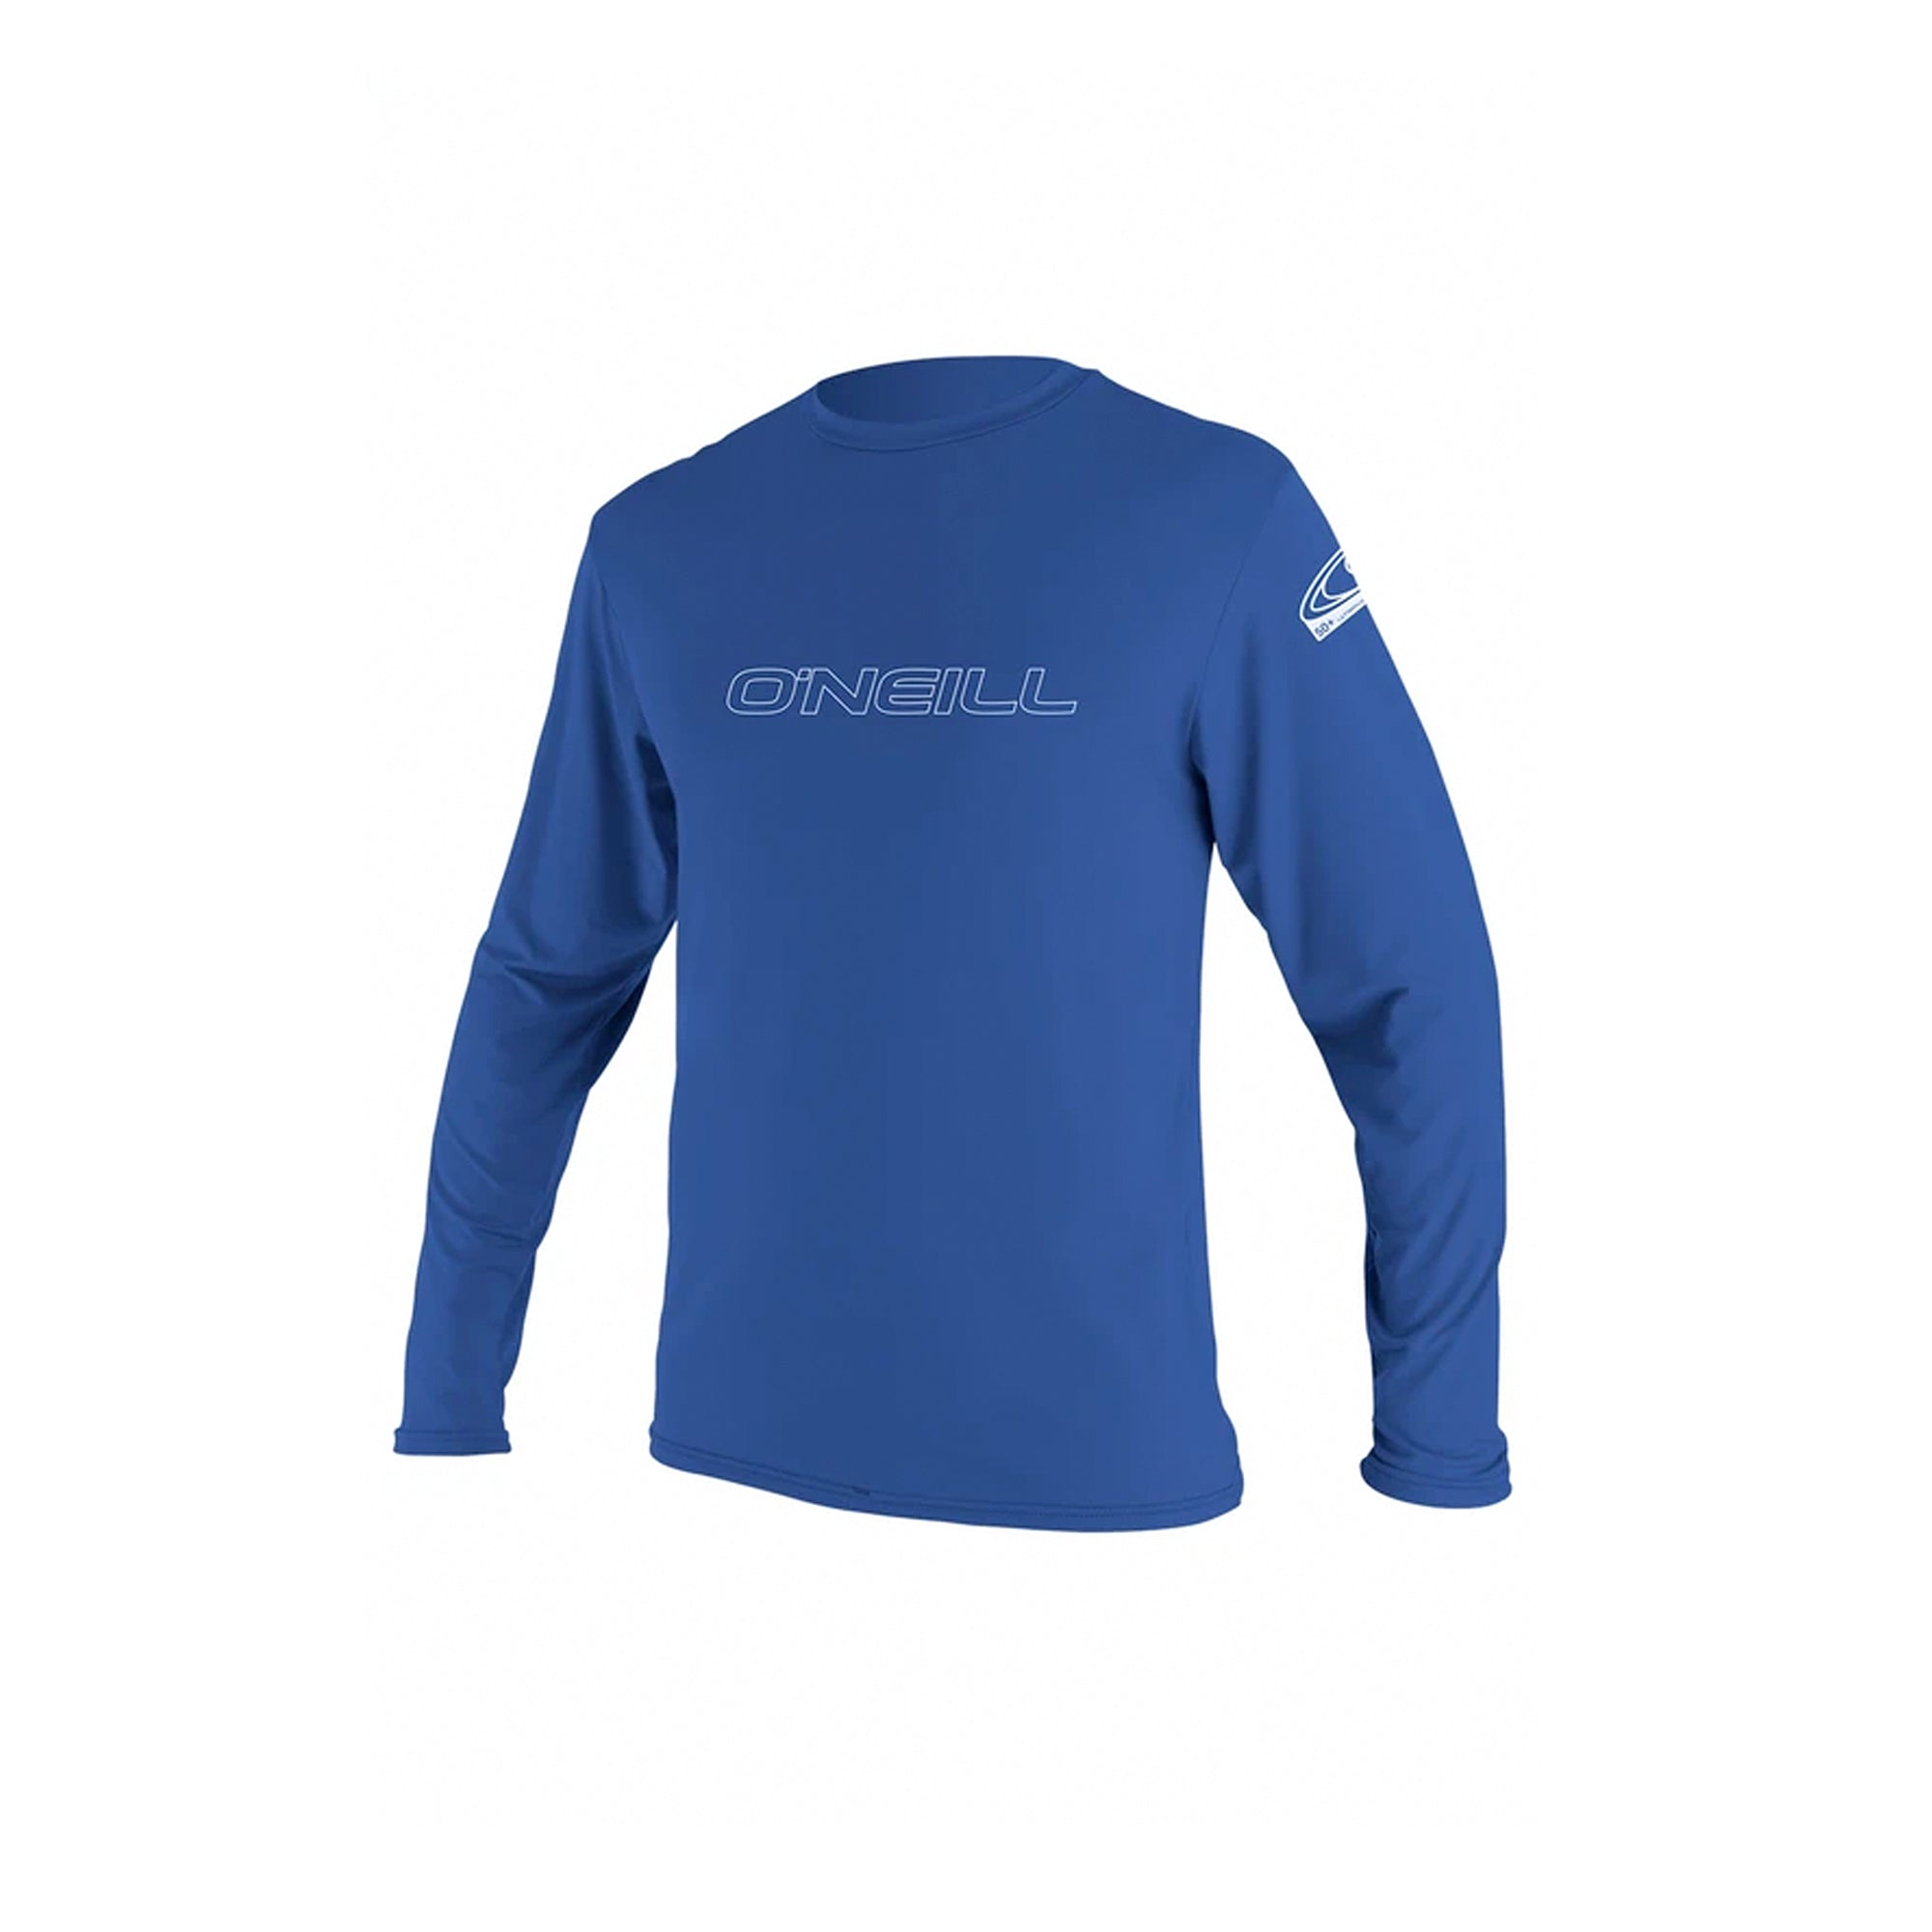 O'Neill Basic Skins L/S Youth Boy's Loose Fit Rashguard